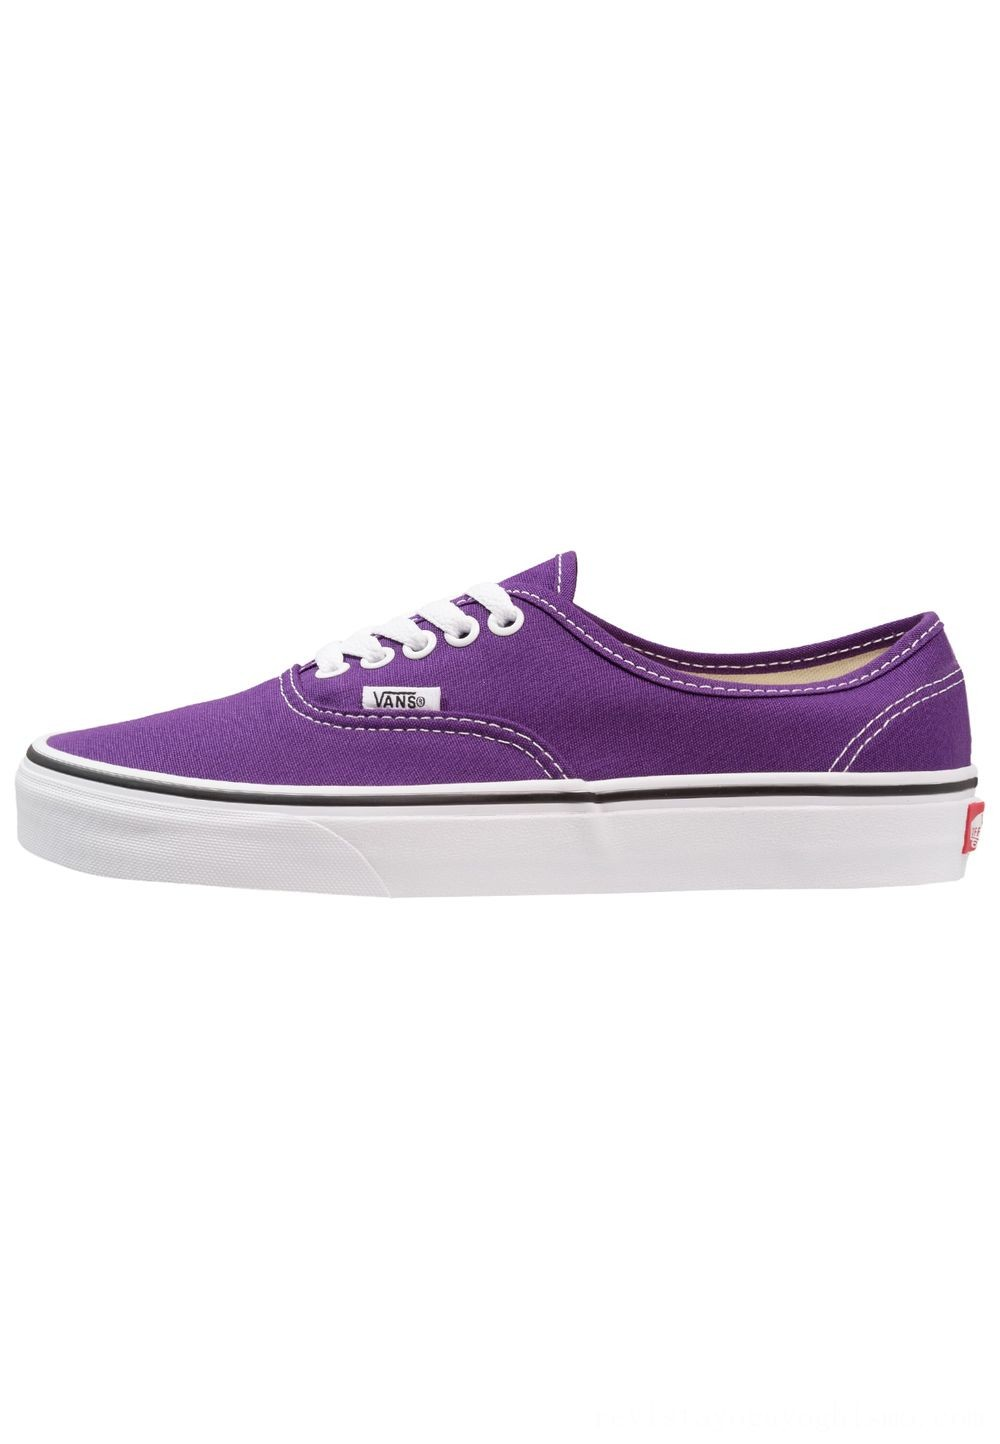 Vans Authentic  - Zapatillas petunia/true white